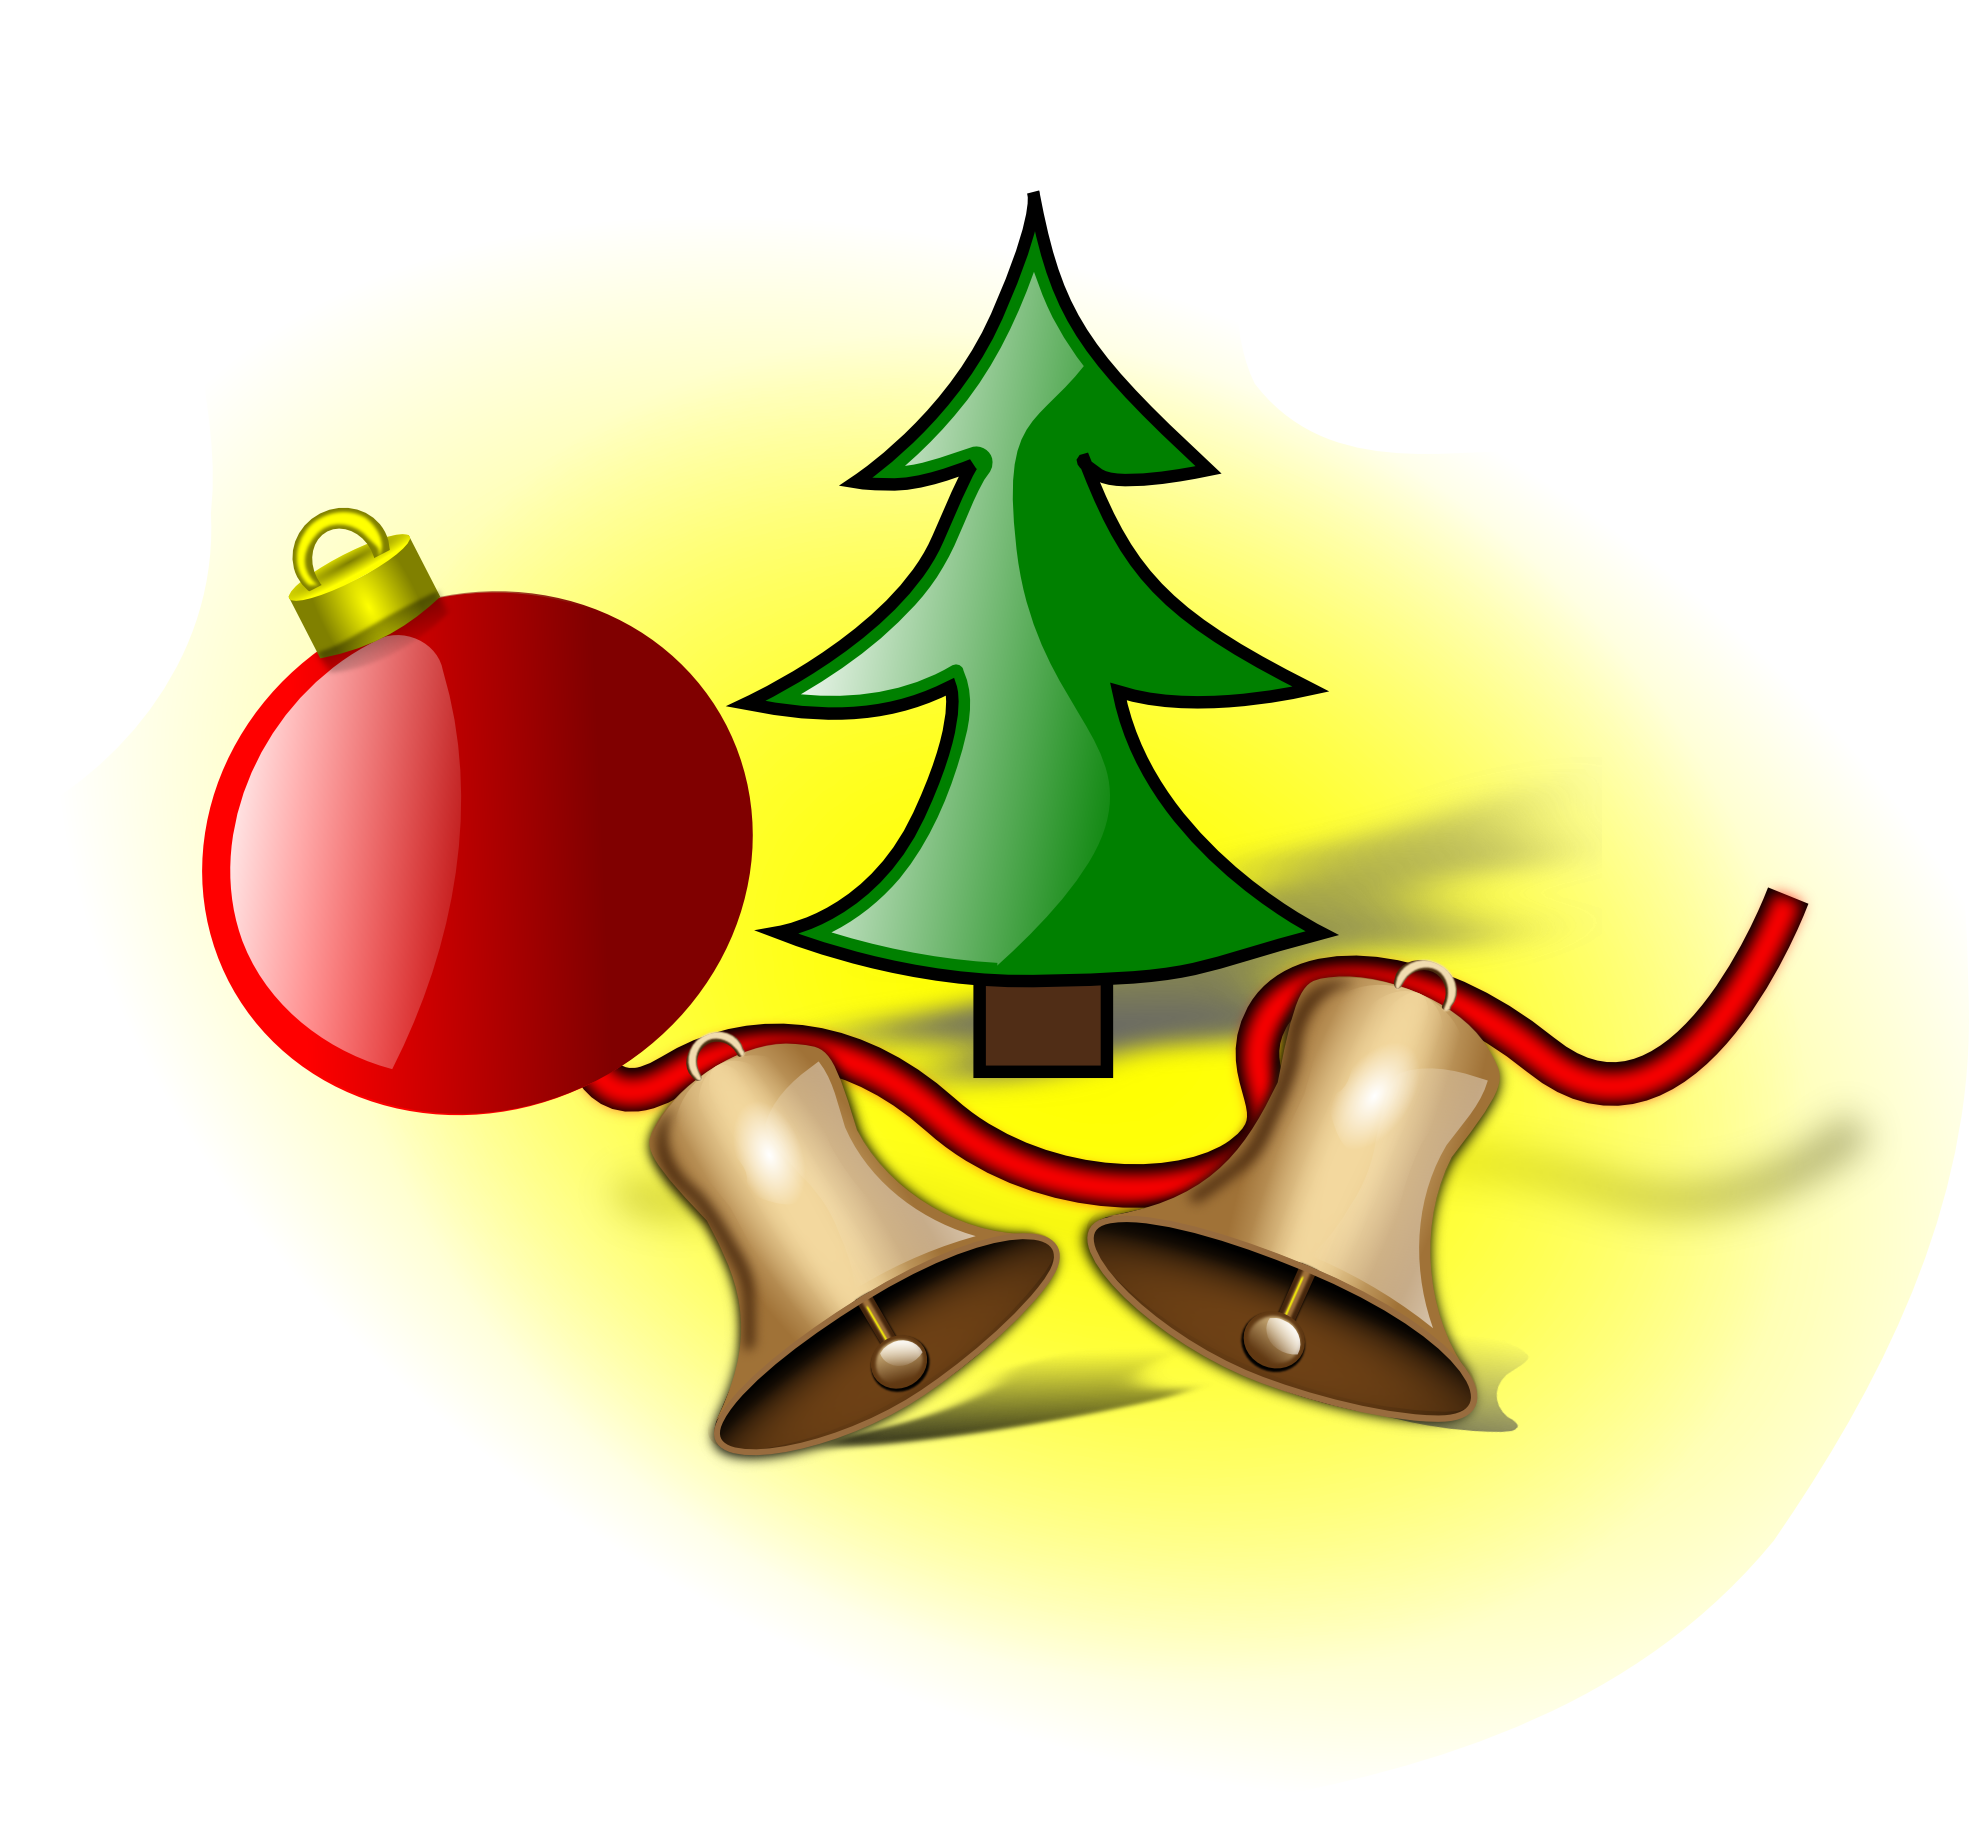 Xmas Stuff For > Christmas Jingle Bells Clip Art